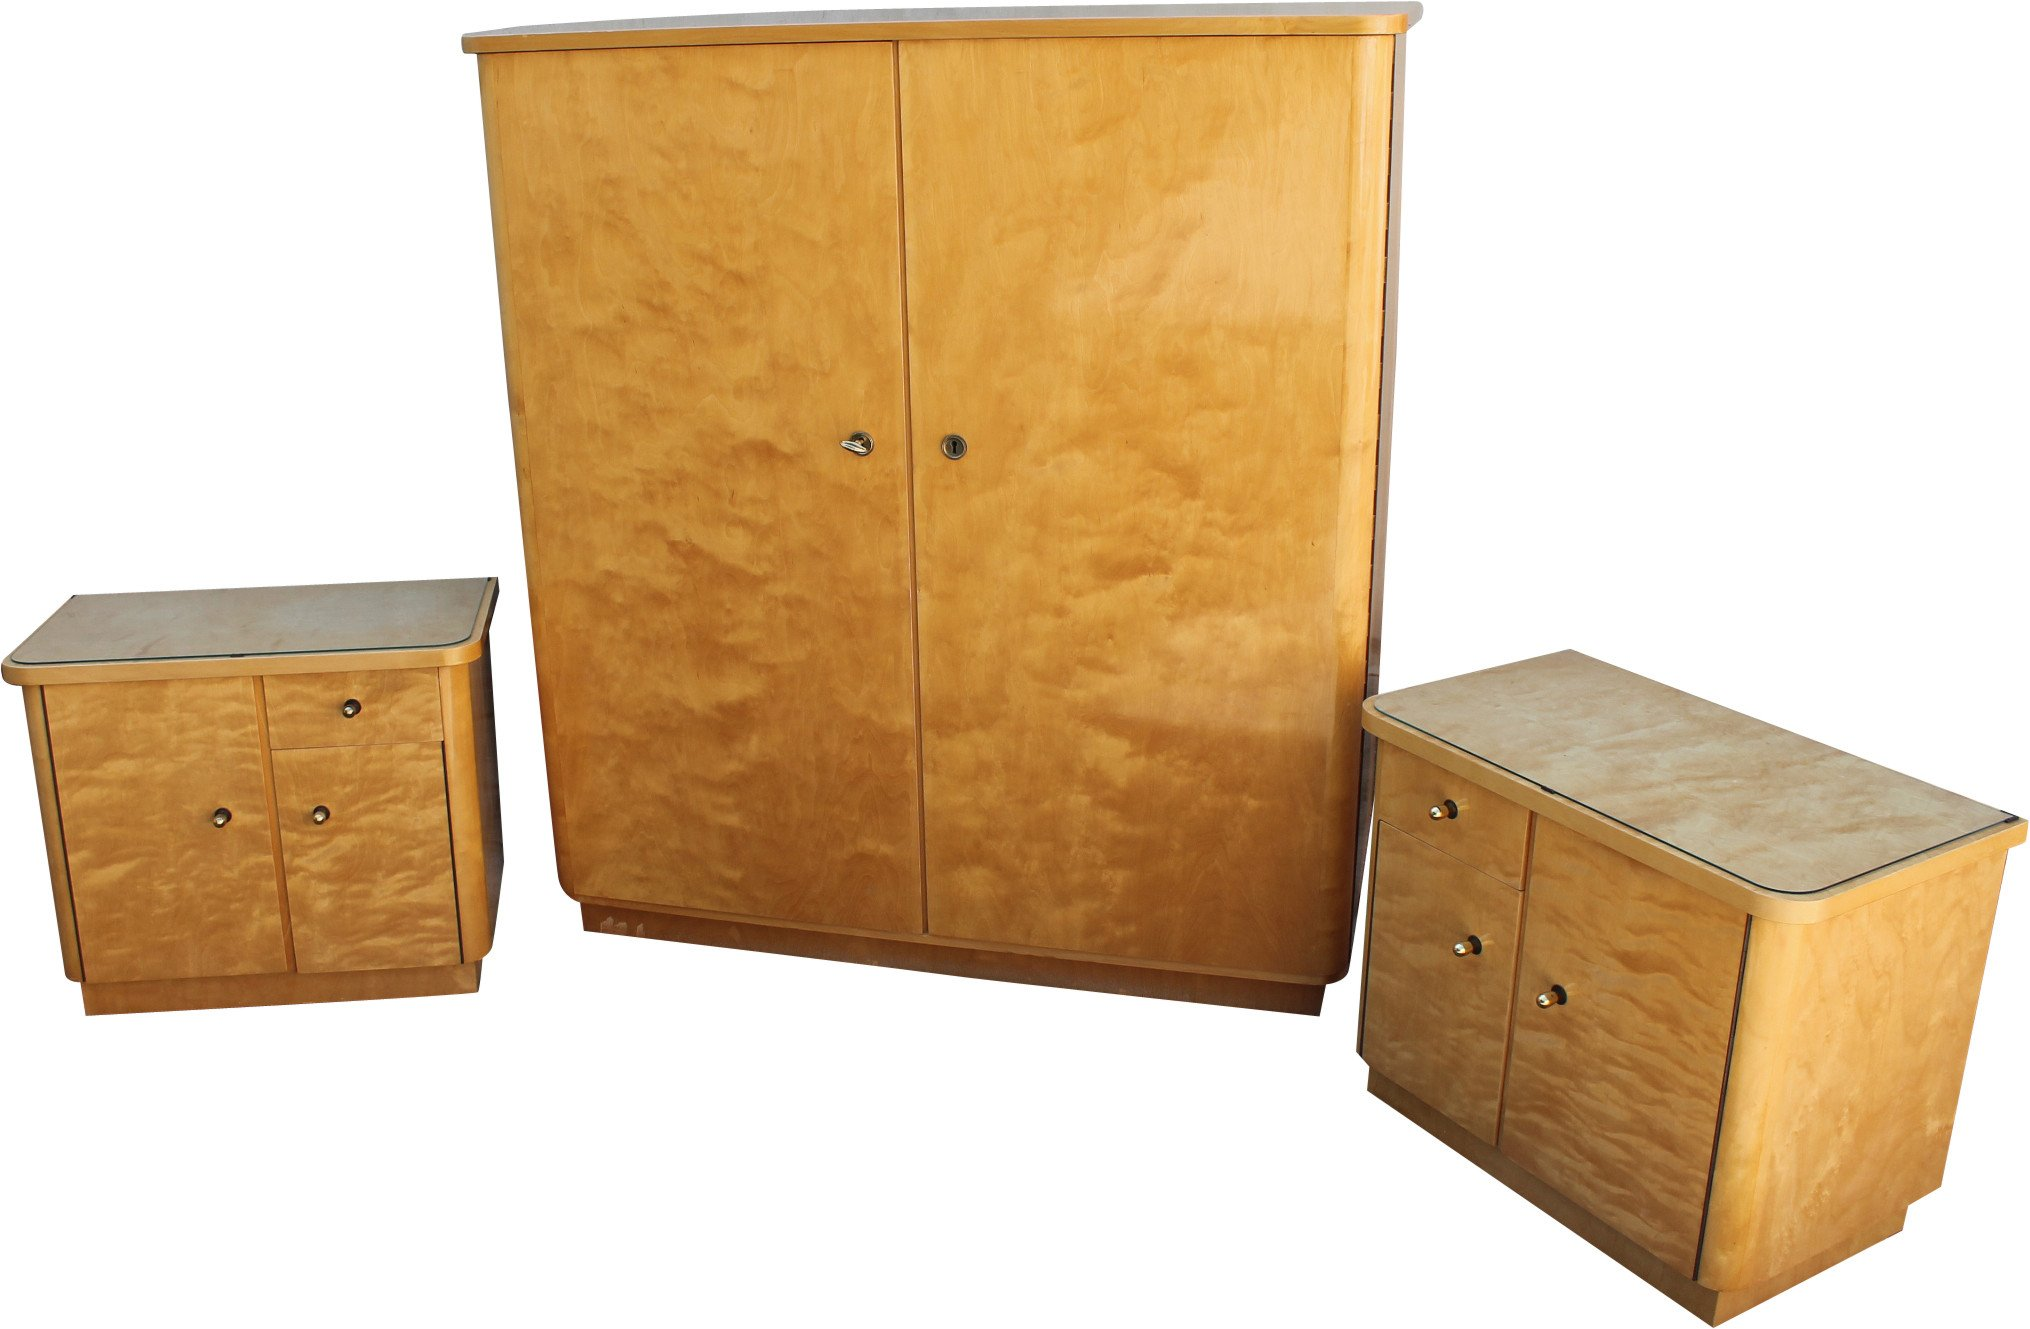 Set of Wardrobe and Two Nightstands, Germany, 1960s